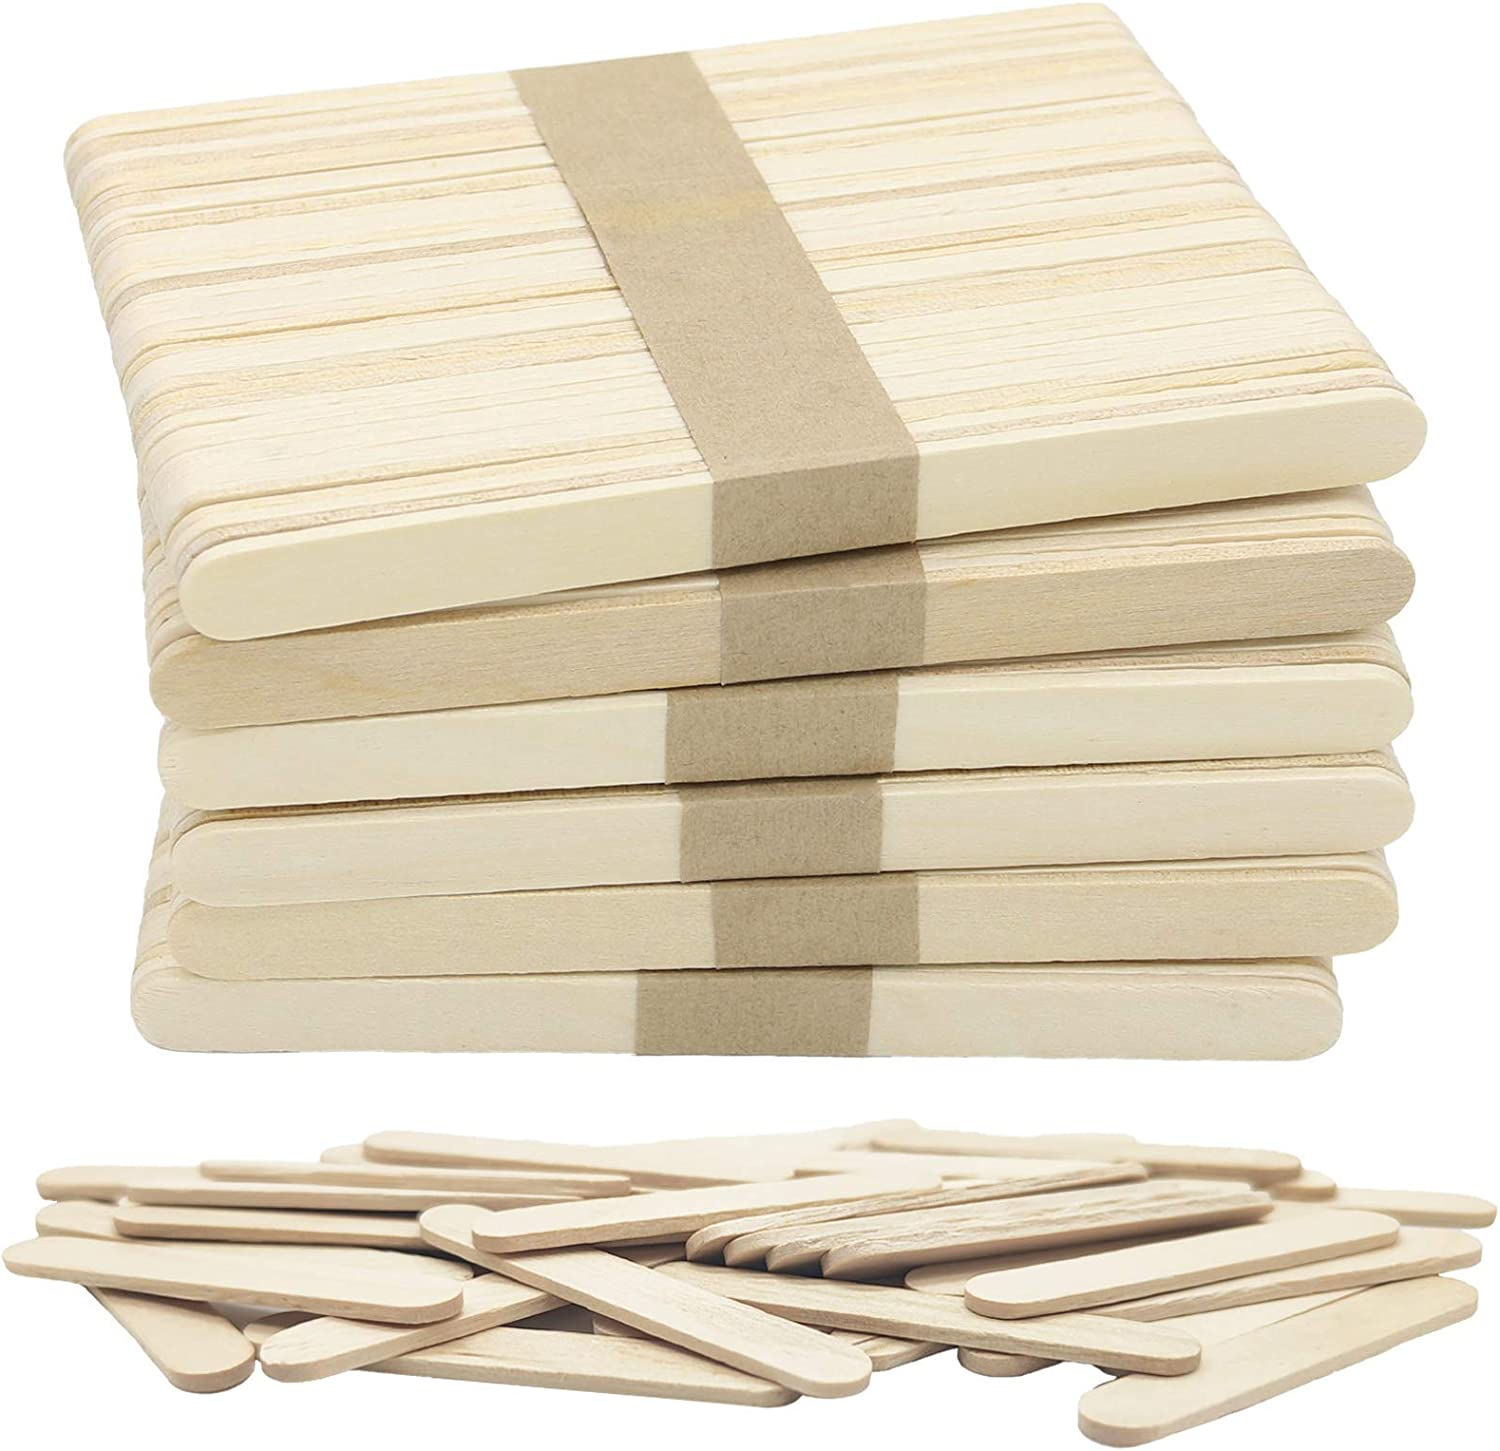 240 Pcs Natural Wood Craft Sticks, Popsicle Sticks, Lolly Sticks for Crafts 4.5 Inch, Ideal for Homeschool Arts and Crafts, Waxing Supplies, Classroom Art Supplies